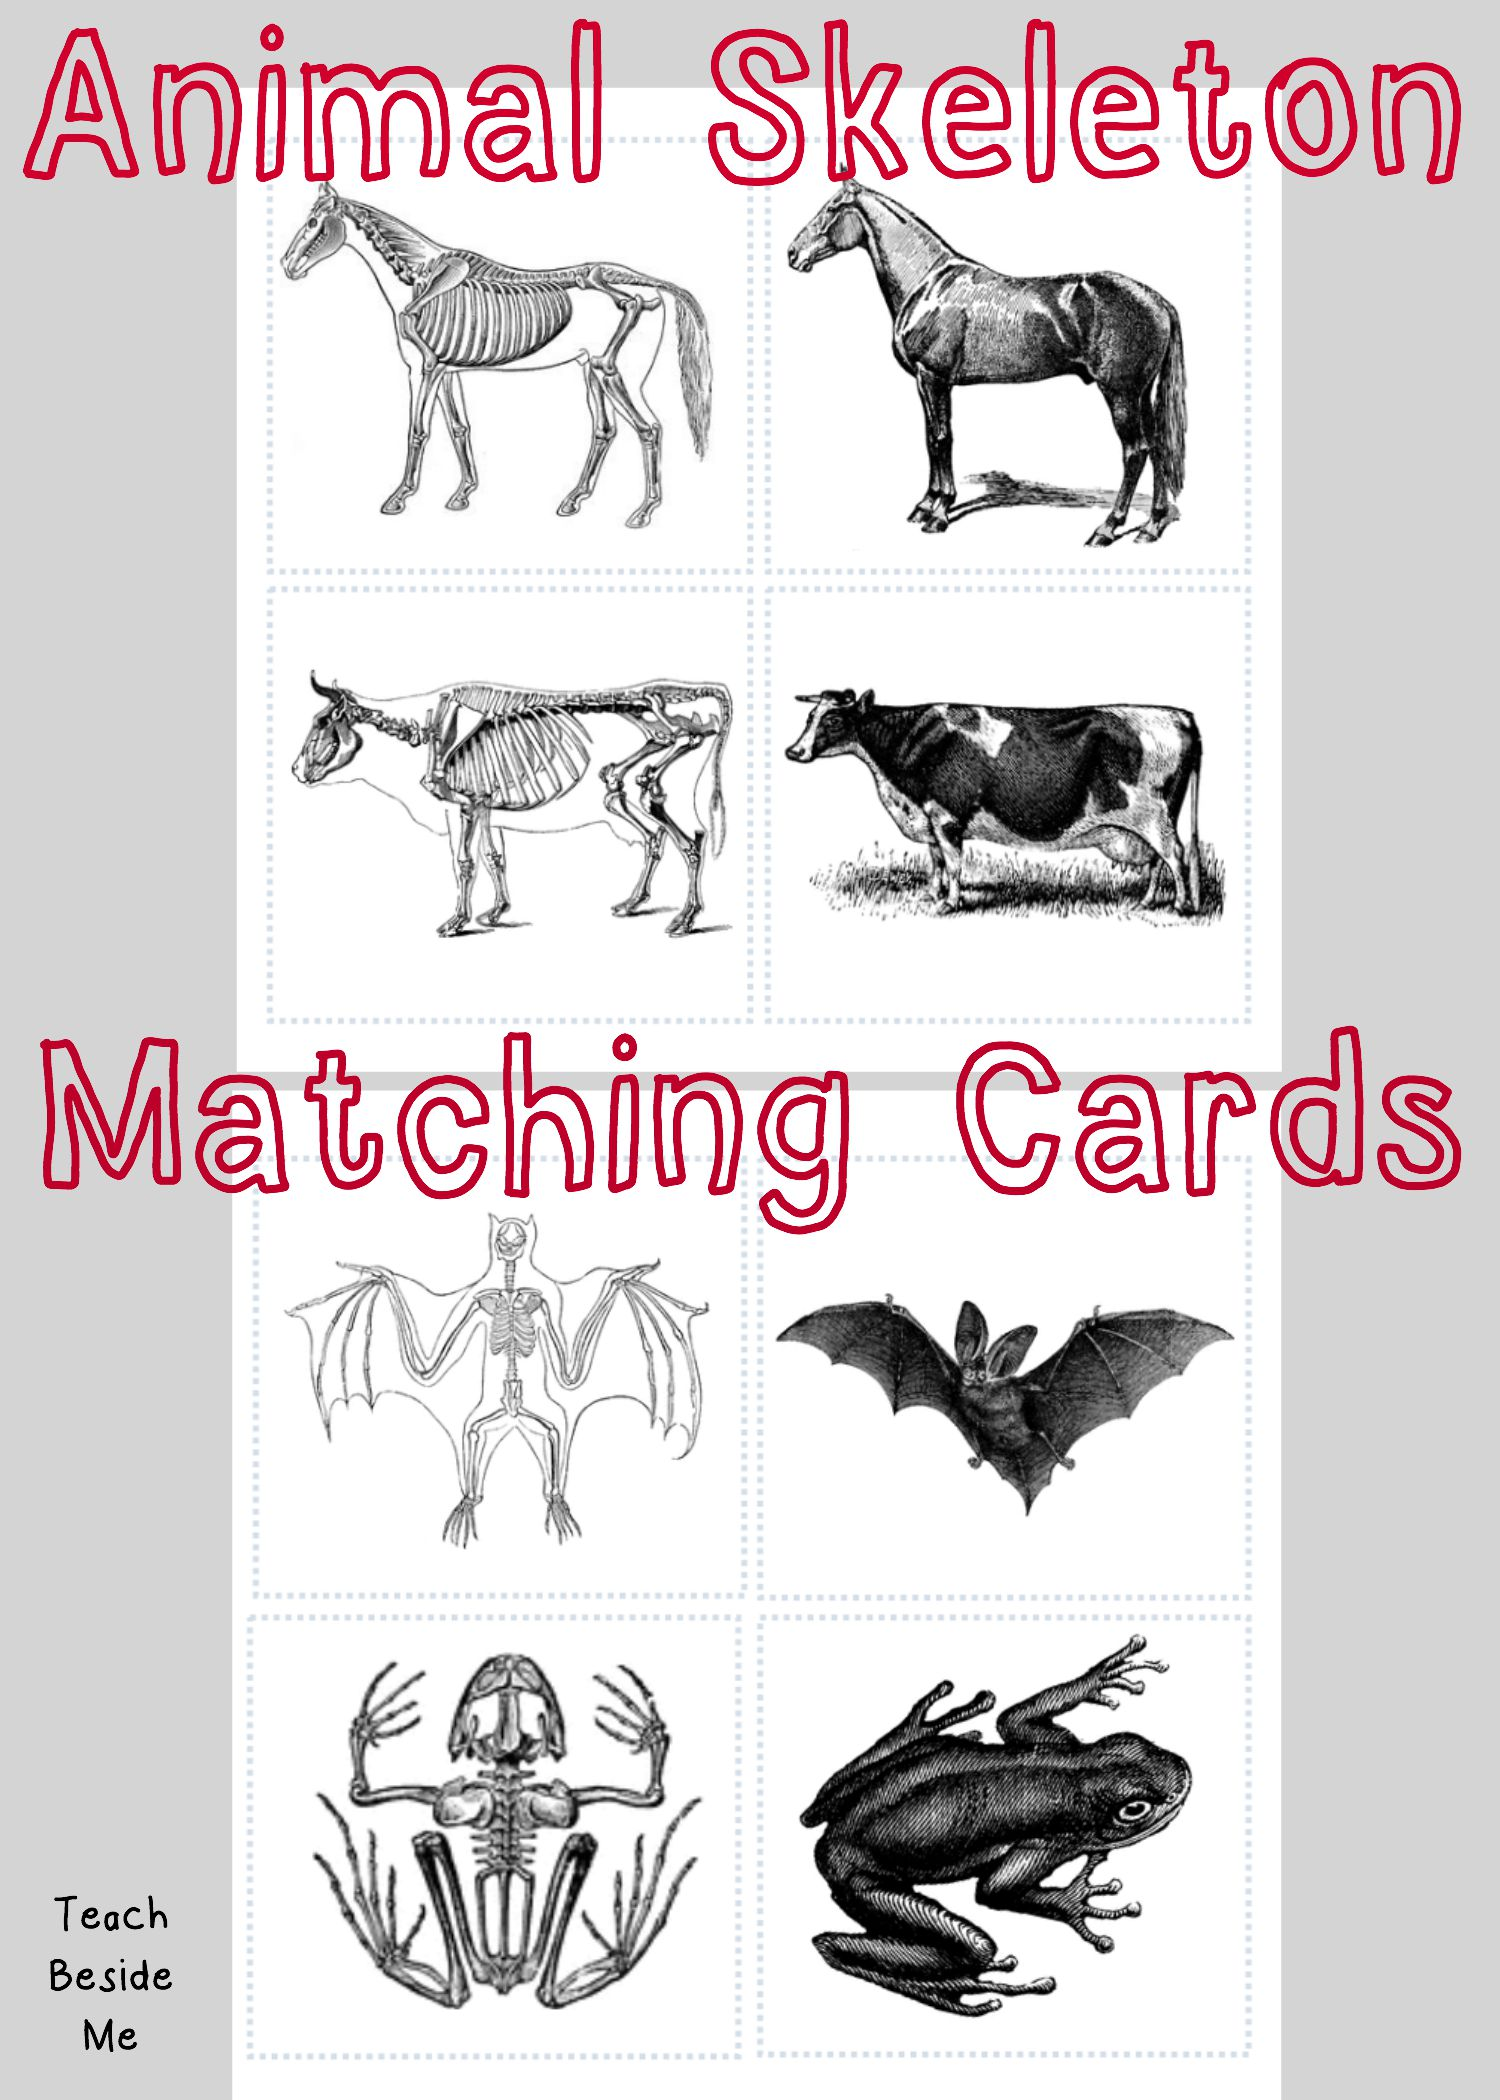 Animal Skeleton Matching Cards